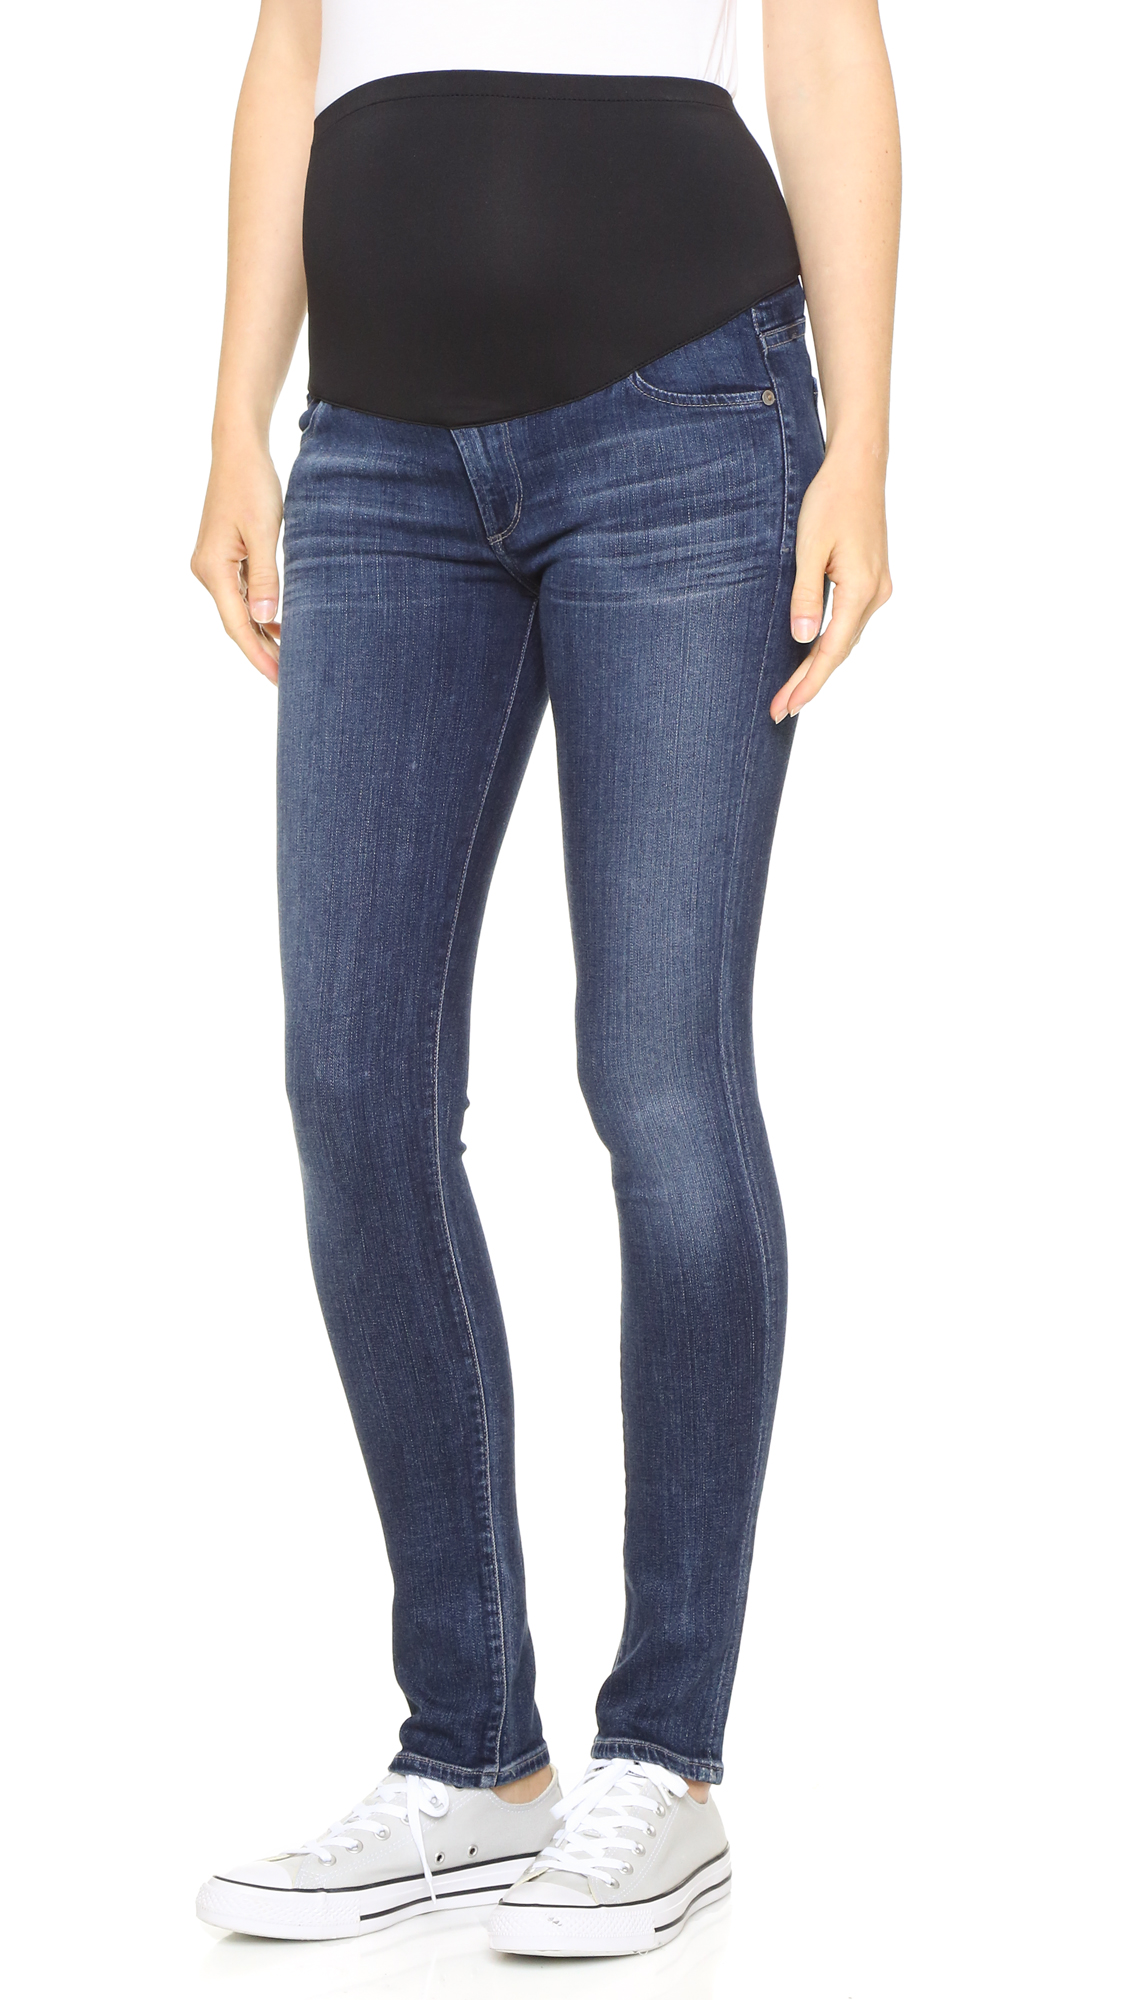 Citizens Of Humanity Avedon Skinny Maternity Jeans - Surreal at Shopbop